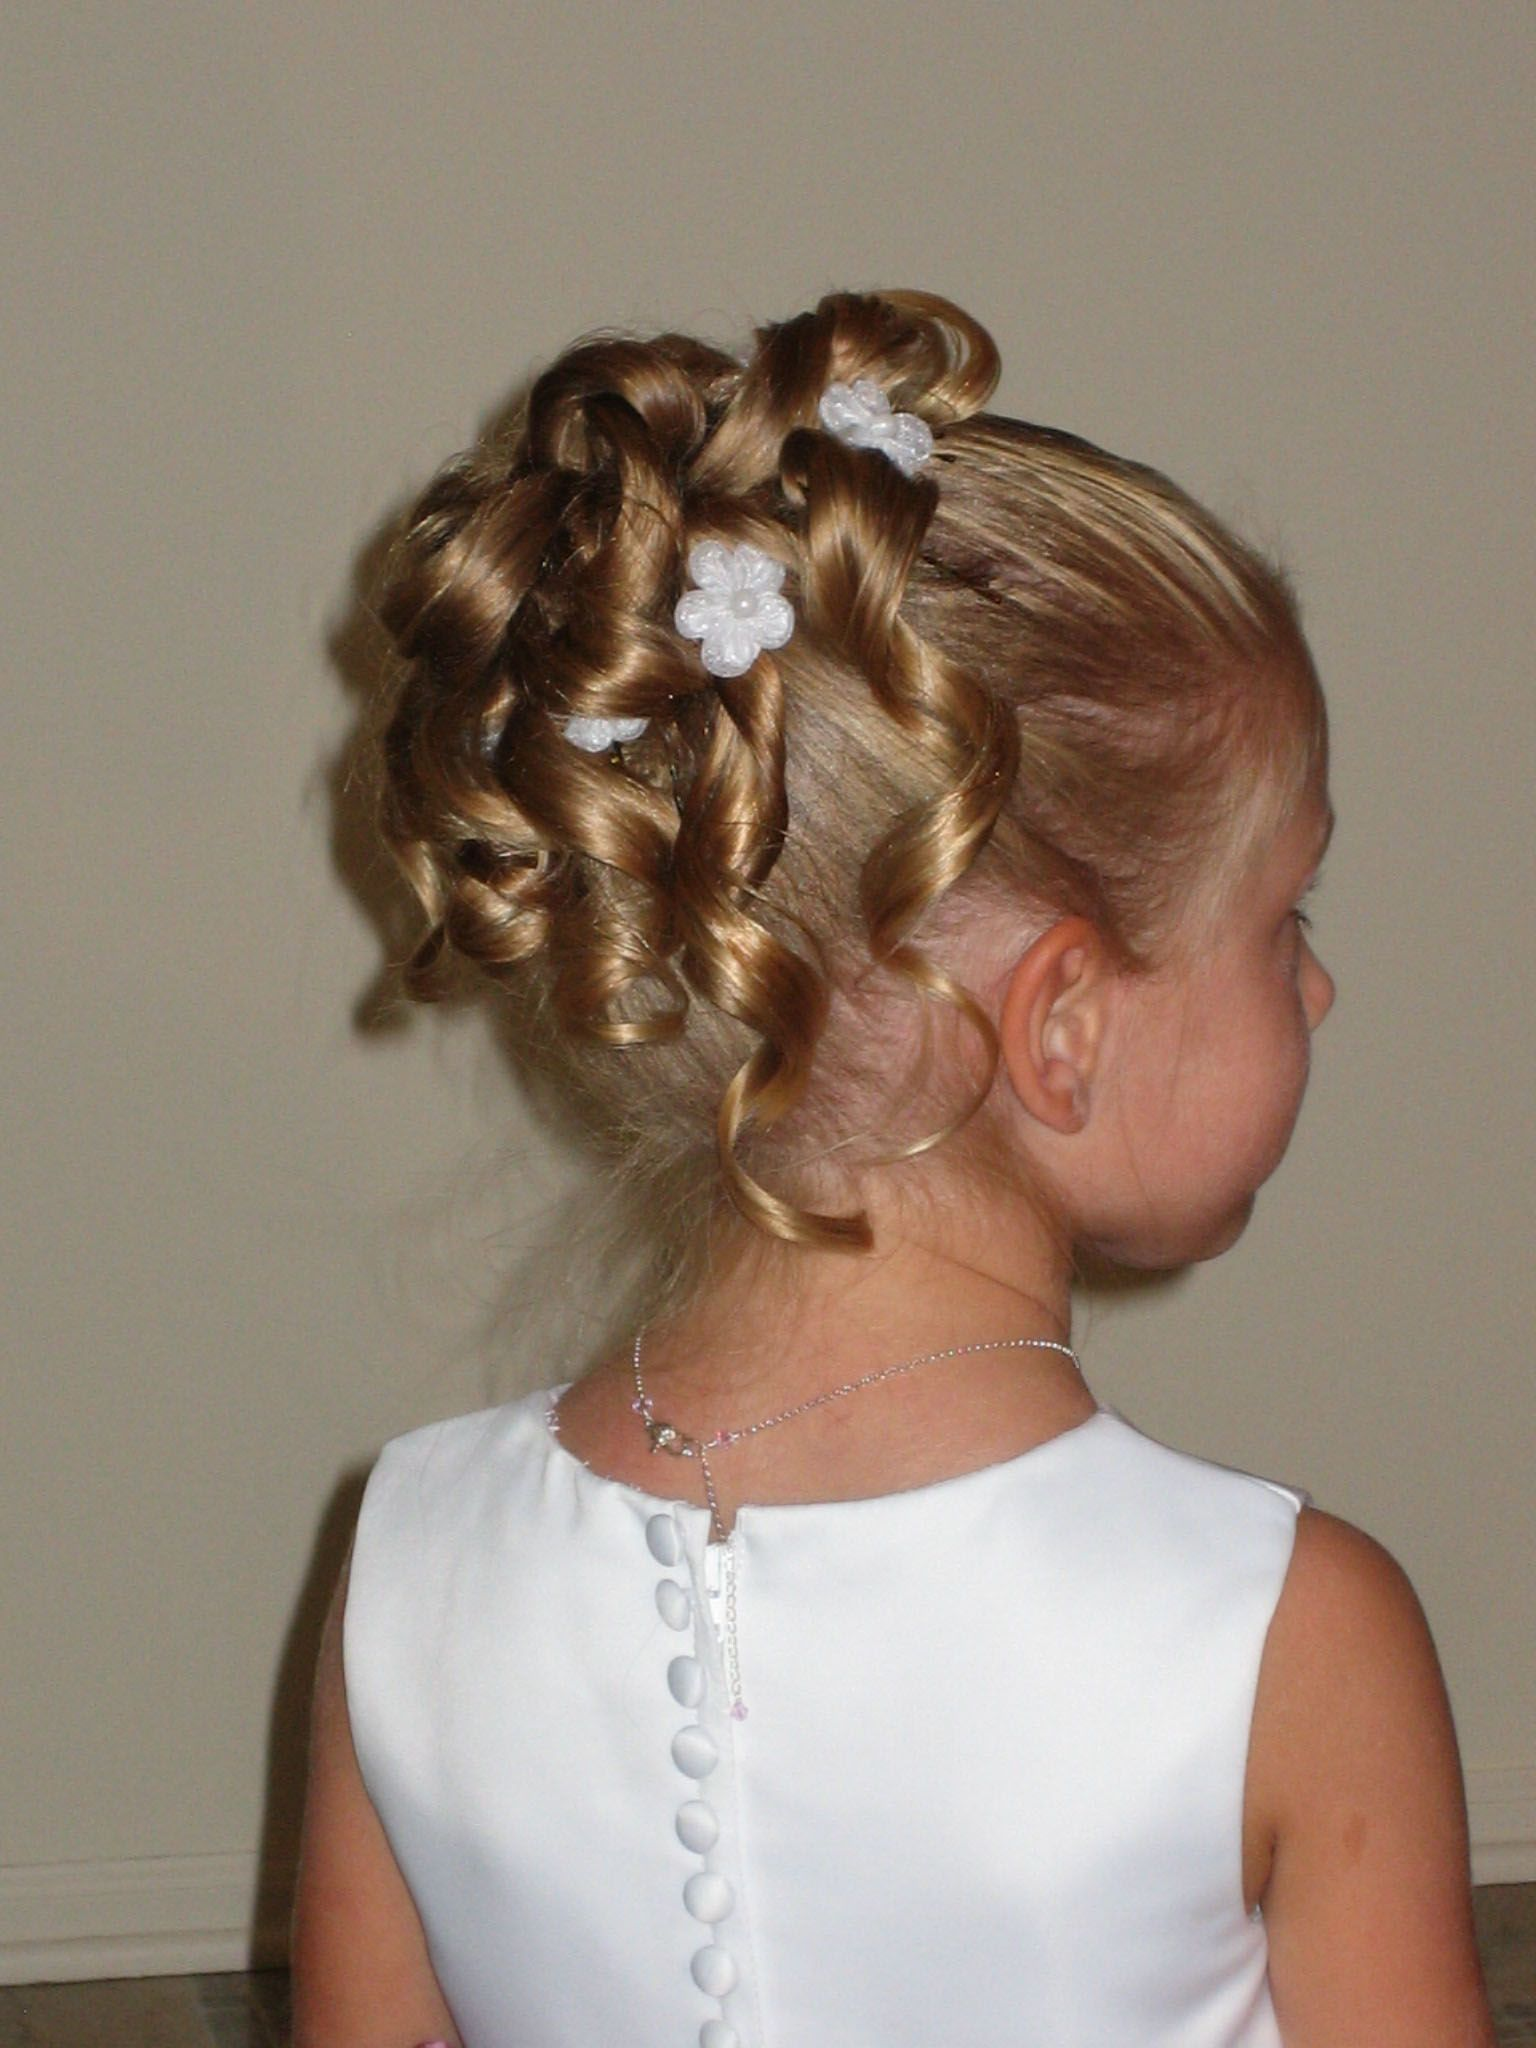 Best cute hairstyles for girls with long hair cute hairstyles for flower girl hairstyles updo image flower girl hairstyles updo for wedding pmusecretfo Gallery